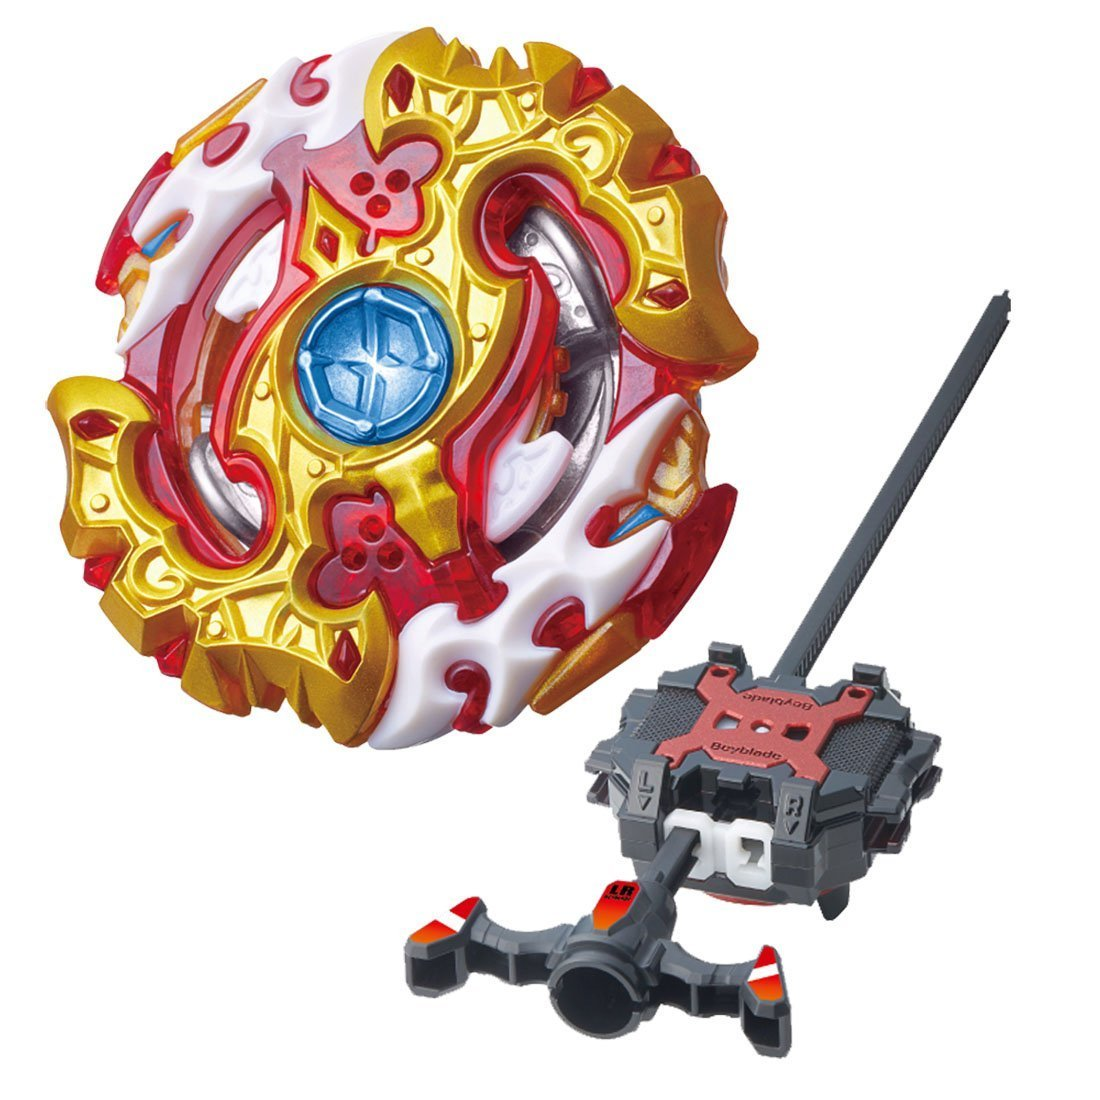 Beyblade burst B-100 starter Spriggan Requiem .0.Zt japan toy shop